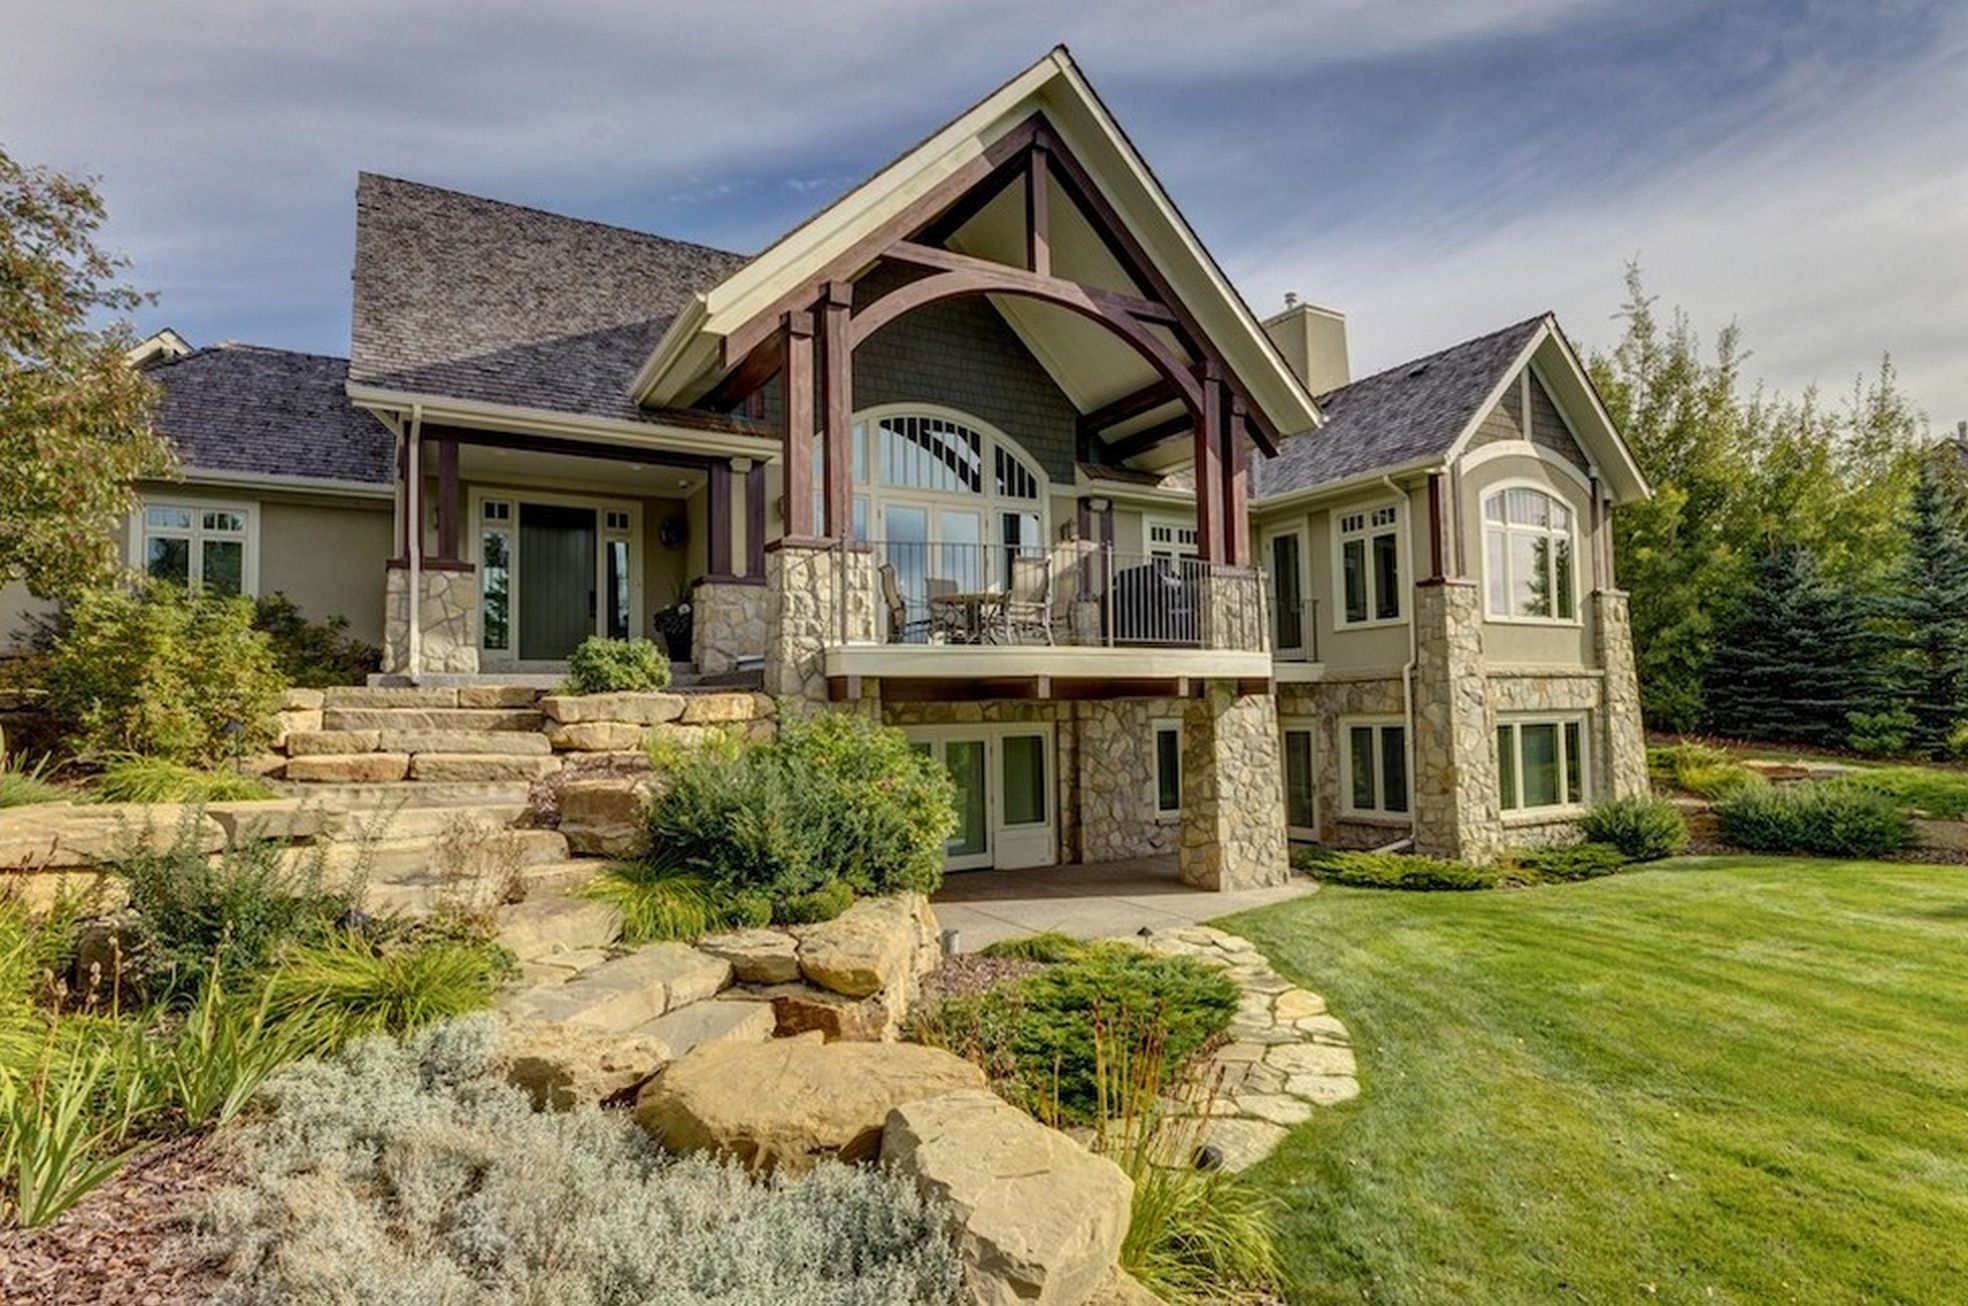 Exterior Design Inspiration May 2014 Lake House Plans House Plans Farmhouse Ranch House Plans